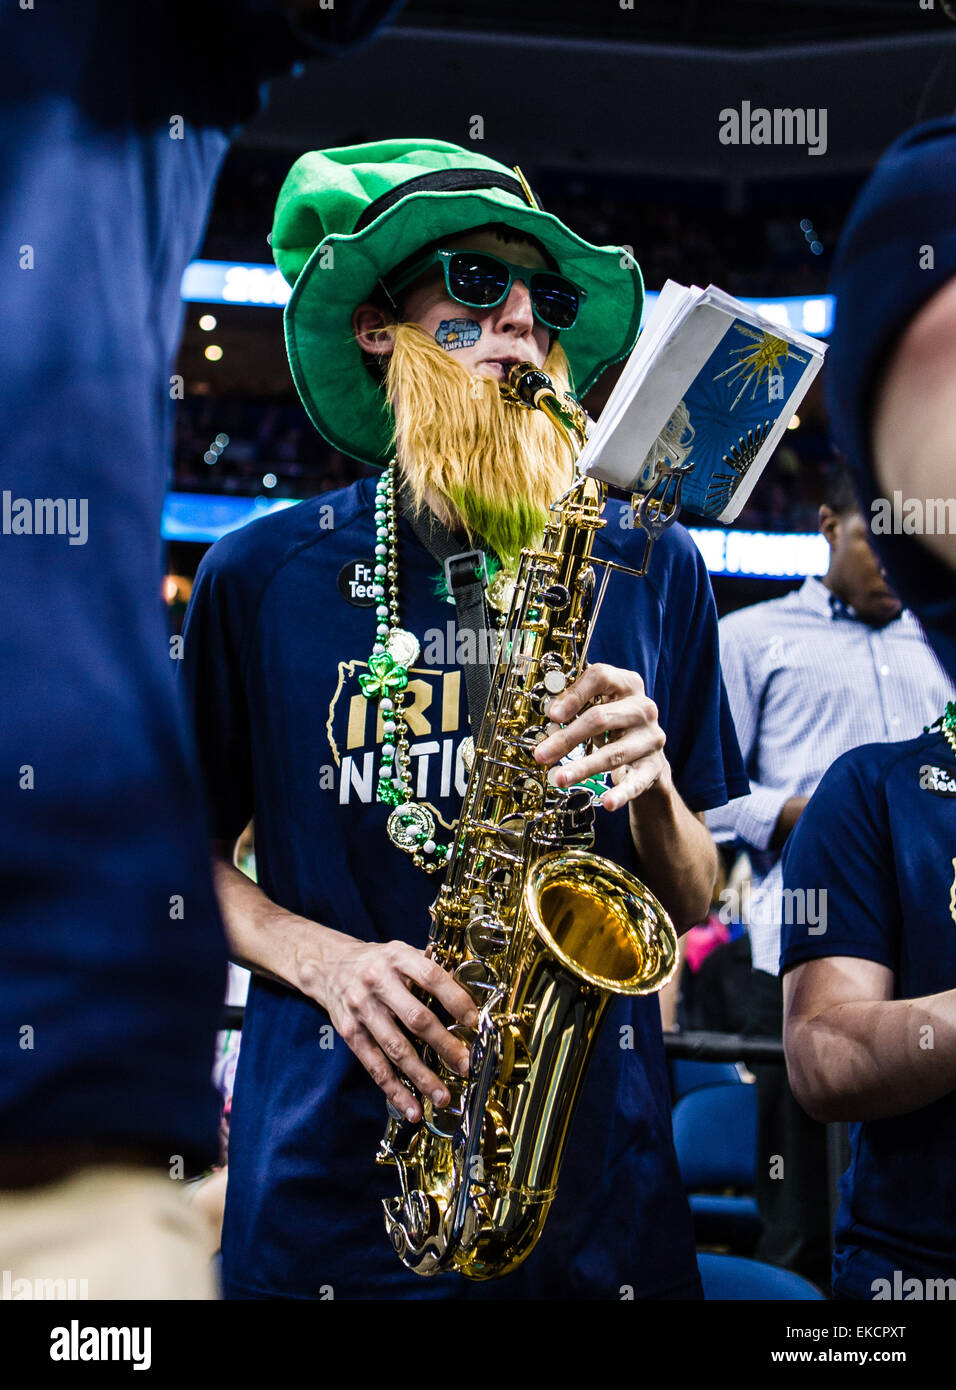 April 7, 2015 - Tampa FL, USA - Pregame shot of a Notre Dame Fighting Irish band member at the NCAA Women's - Stock Image